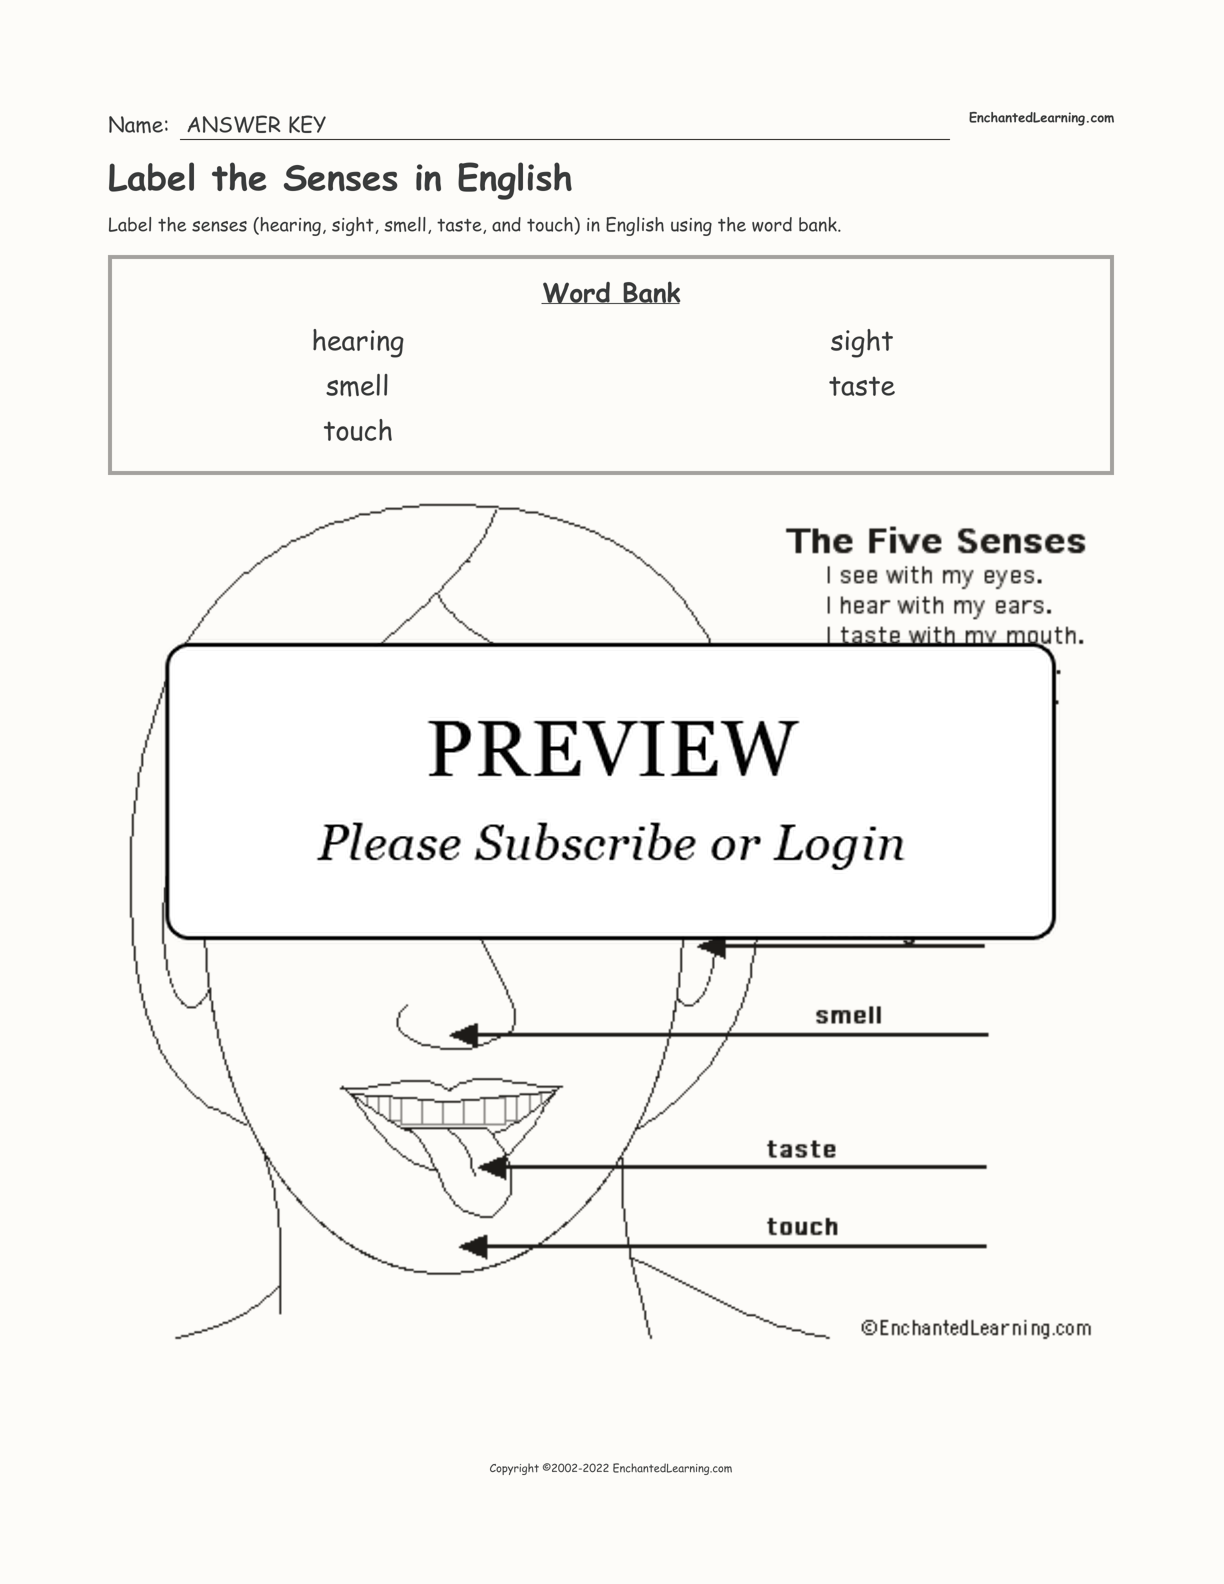 Label the Senses in English interactive worksheet page 2